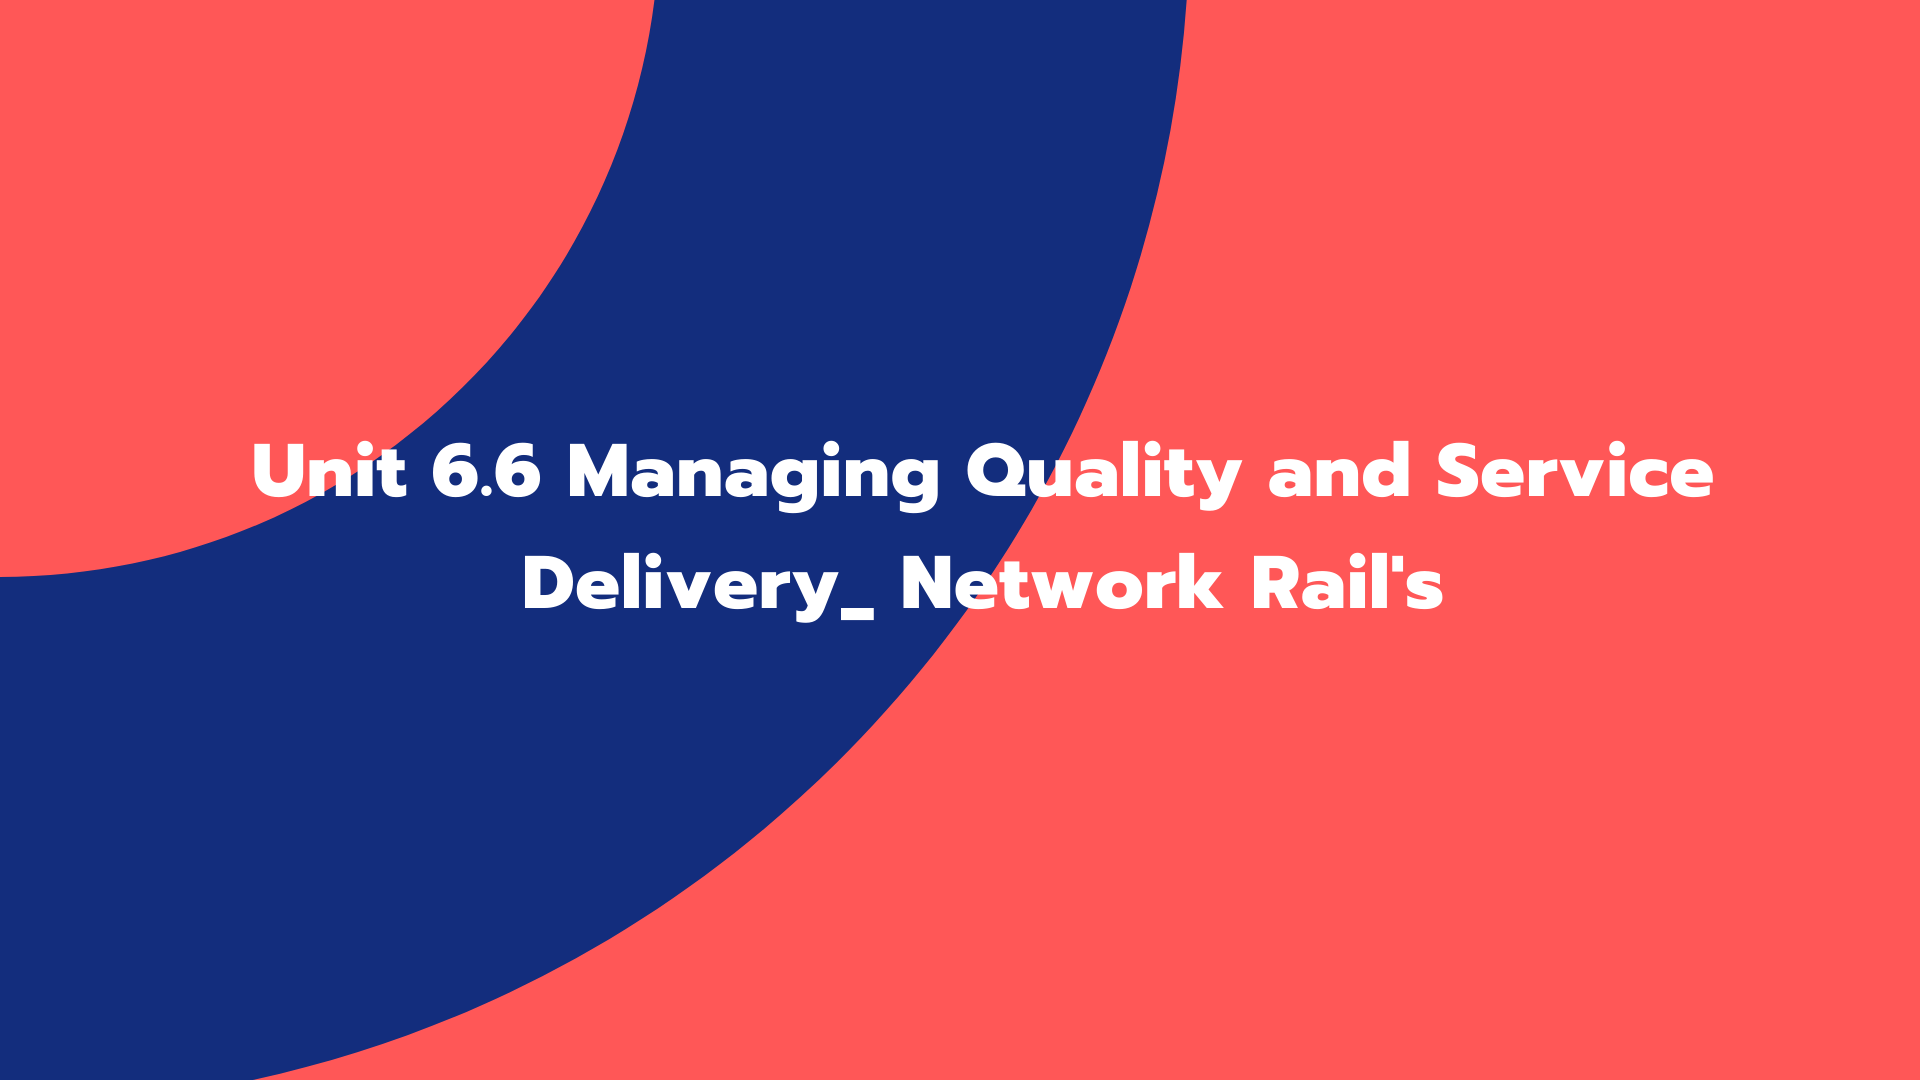 Unit 6.6 Managing Quality and Service Delivery_ Network Rail's